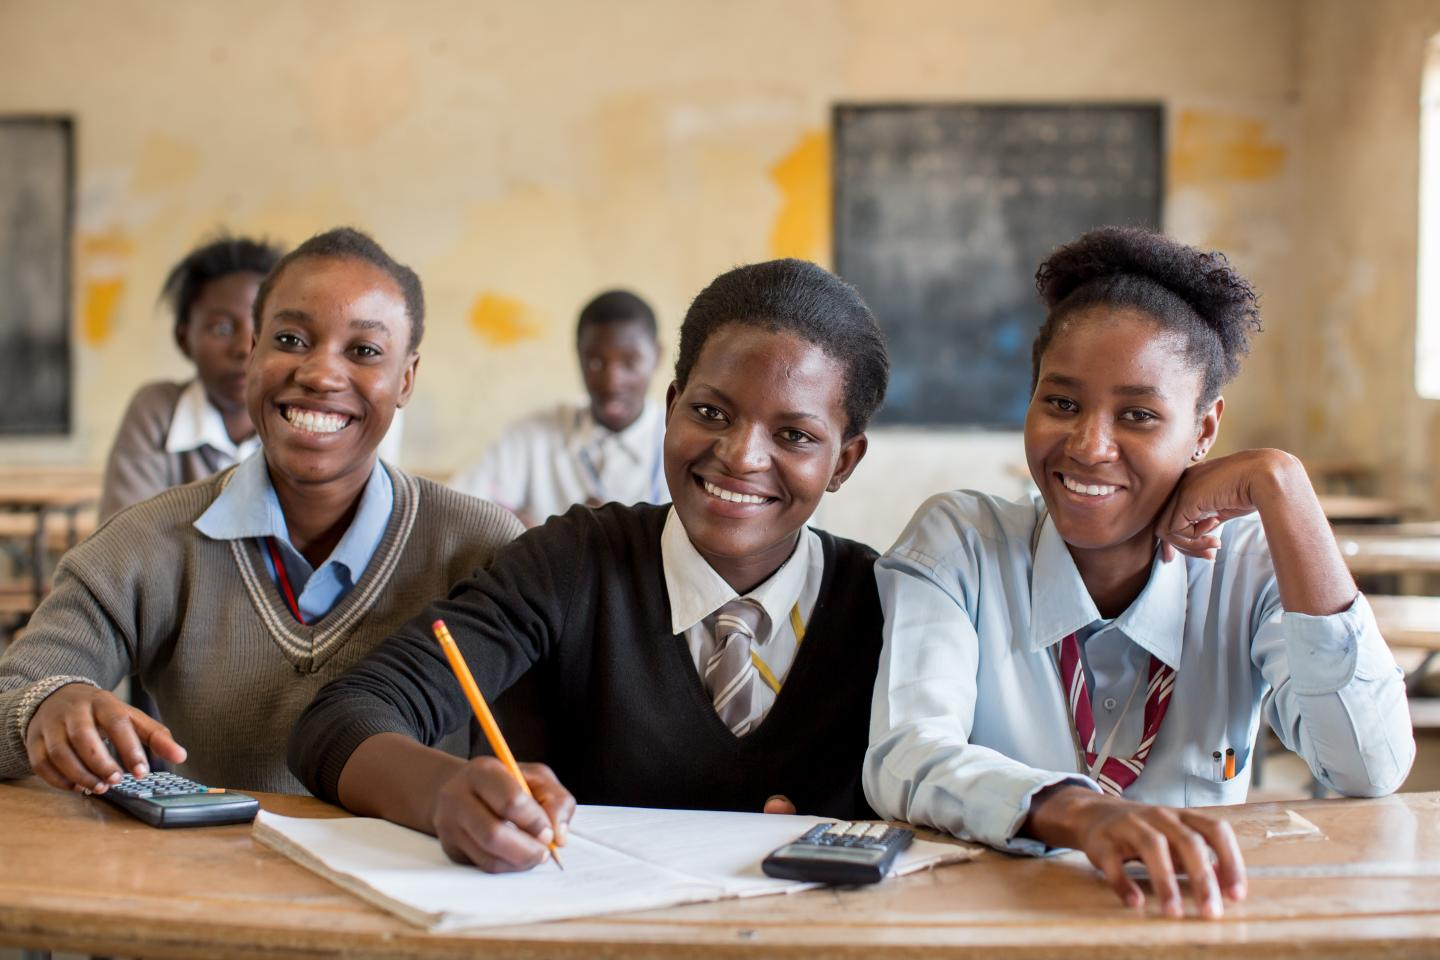 World leaders unite under new initiative to provide quality education and training for young people